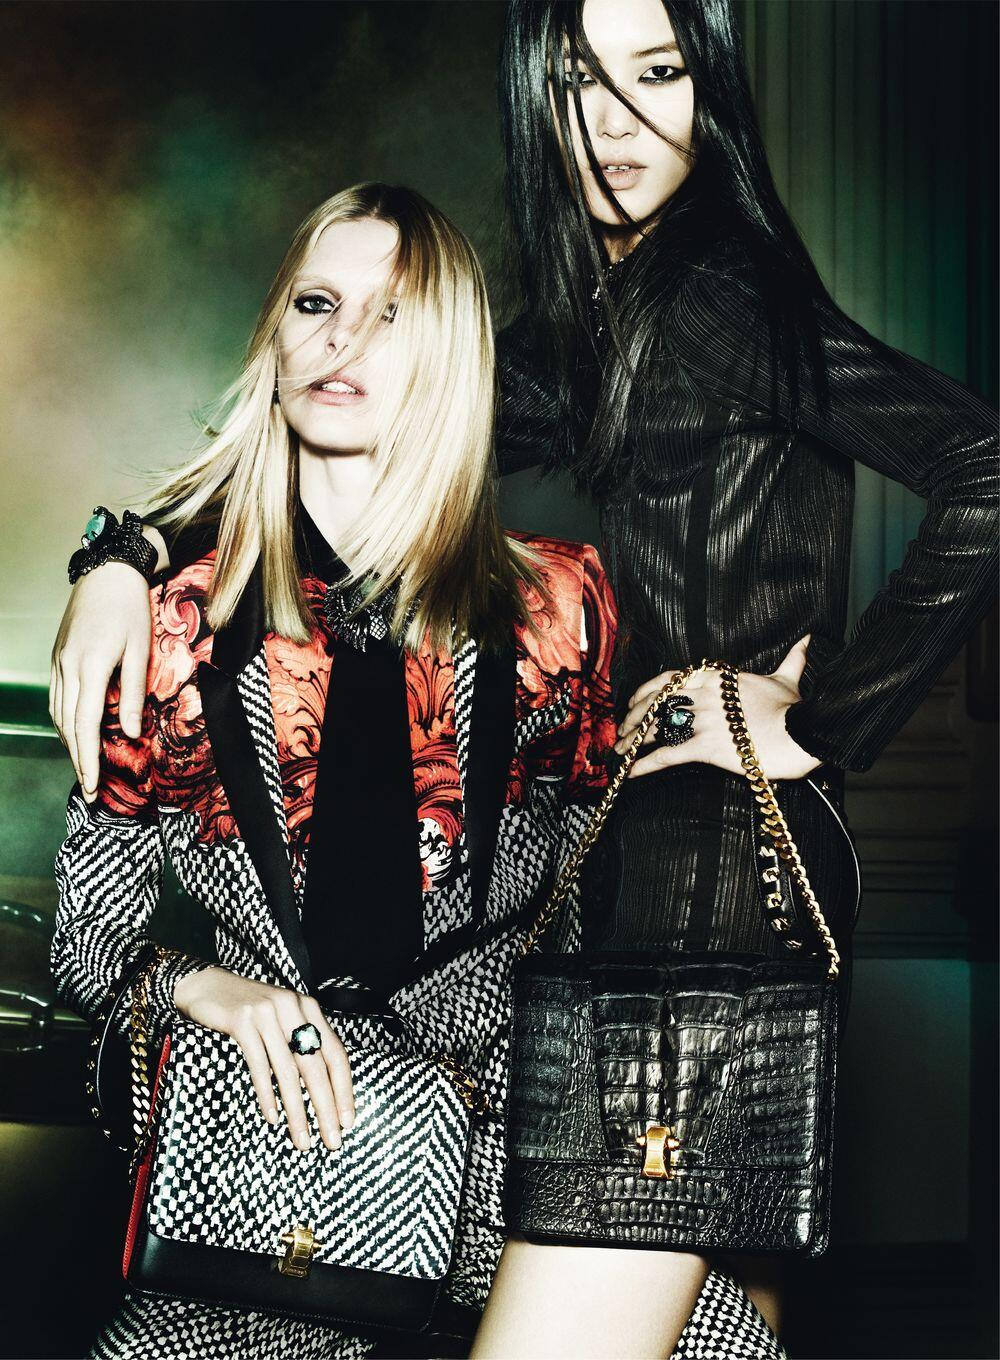 The fall campaign from @Roberto_Cavalli brings on the glam with @LiuWenLW and @IselinSteiro http://t.co/E1c0D5vK8t